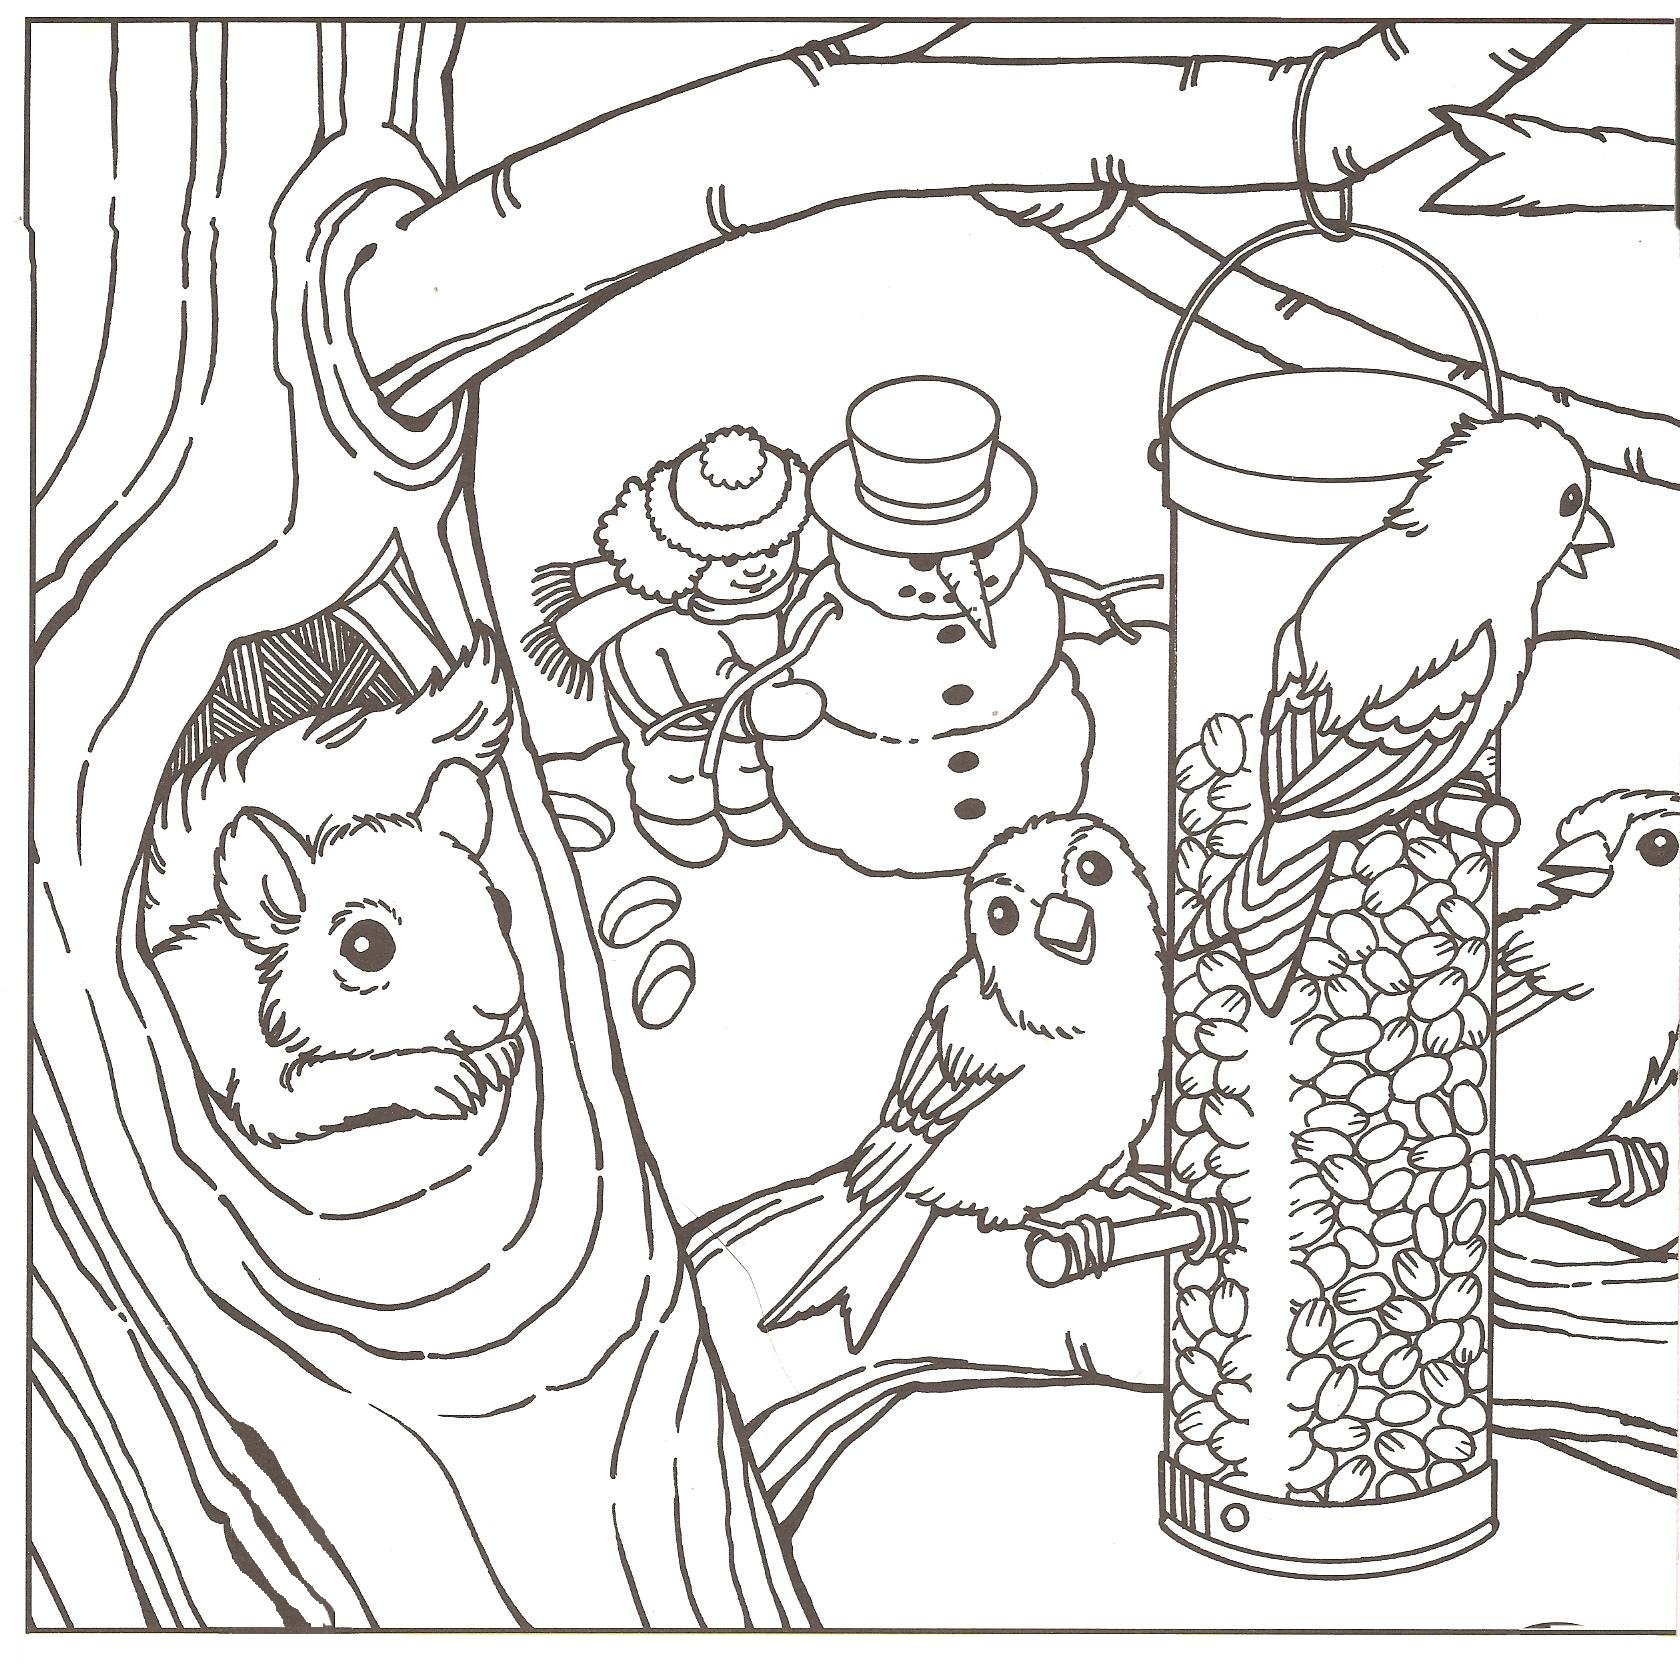 click here for part 1 - Winter Coloring Pages Printable Free 2